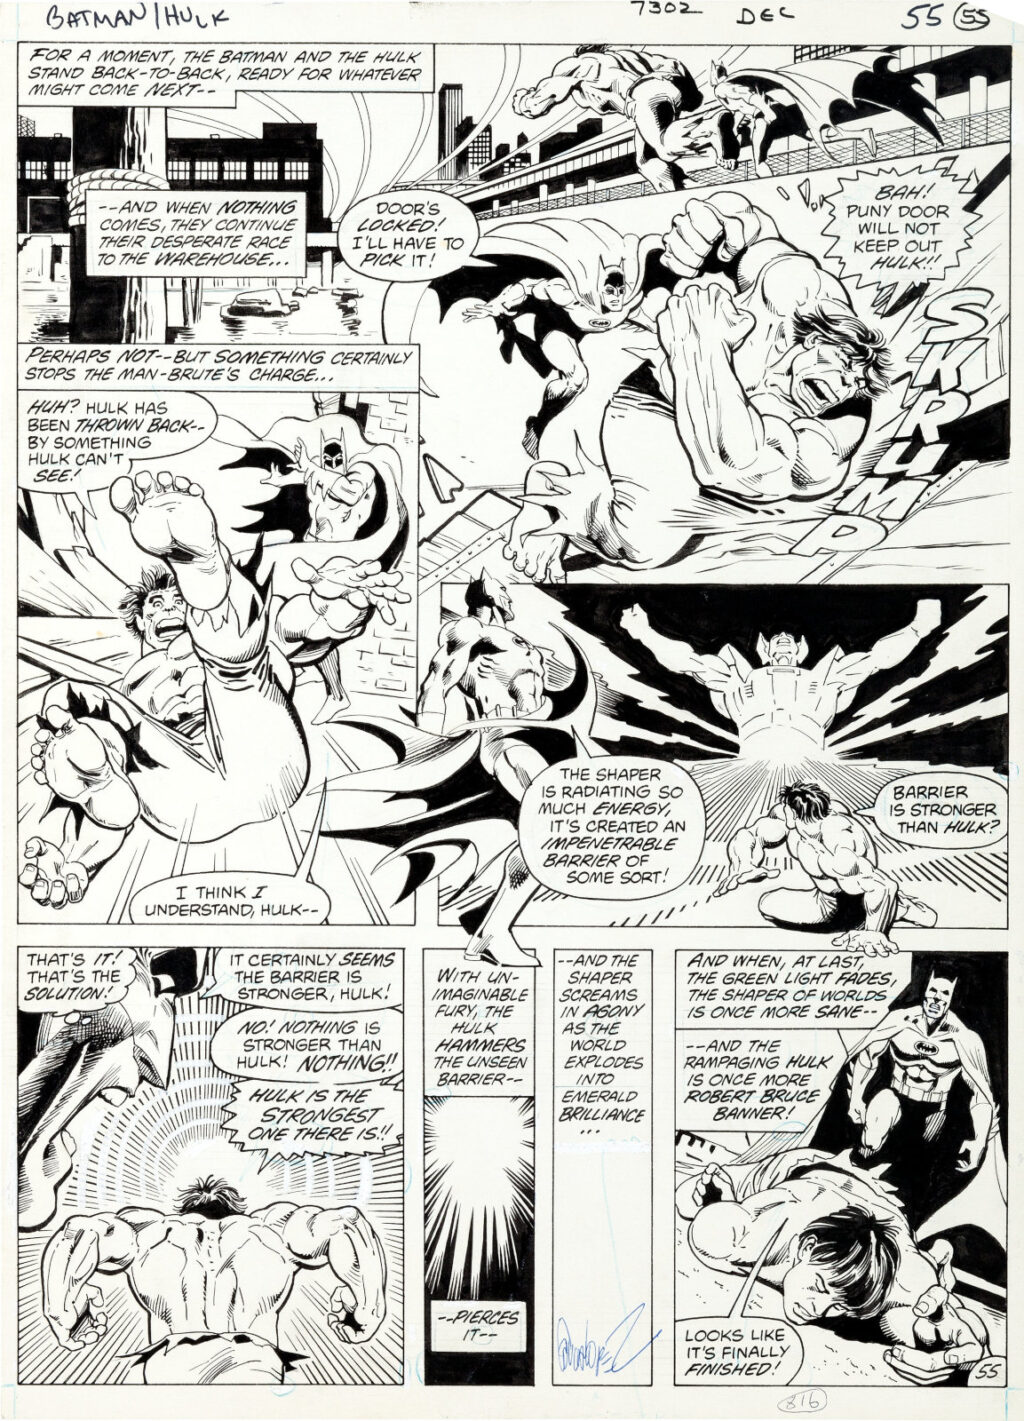 DC Special Series issue 27 page 55 by Jose Luis Garcia Lopez and Dick Giordano